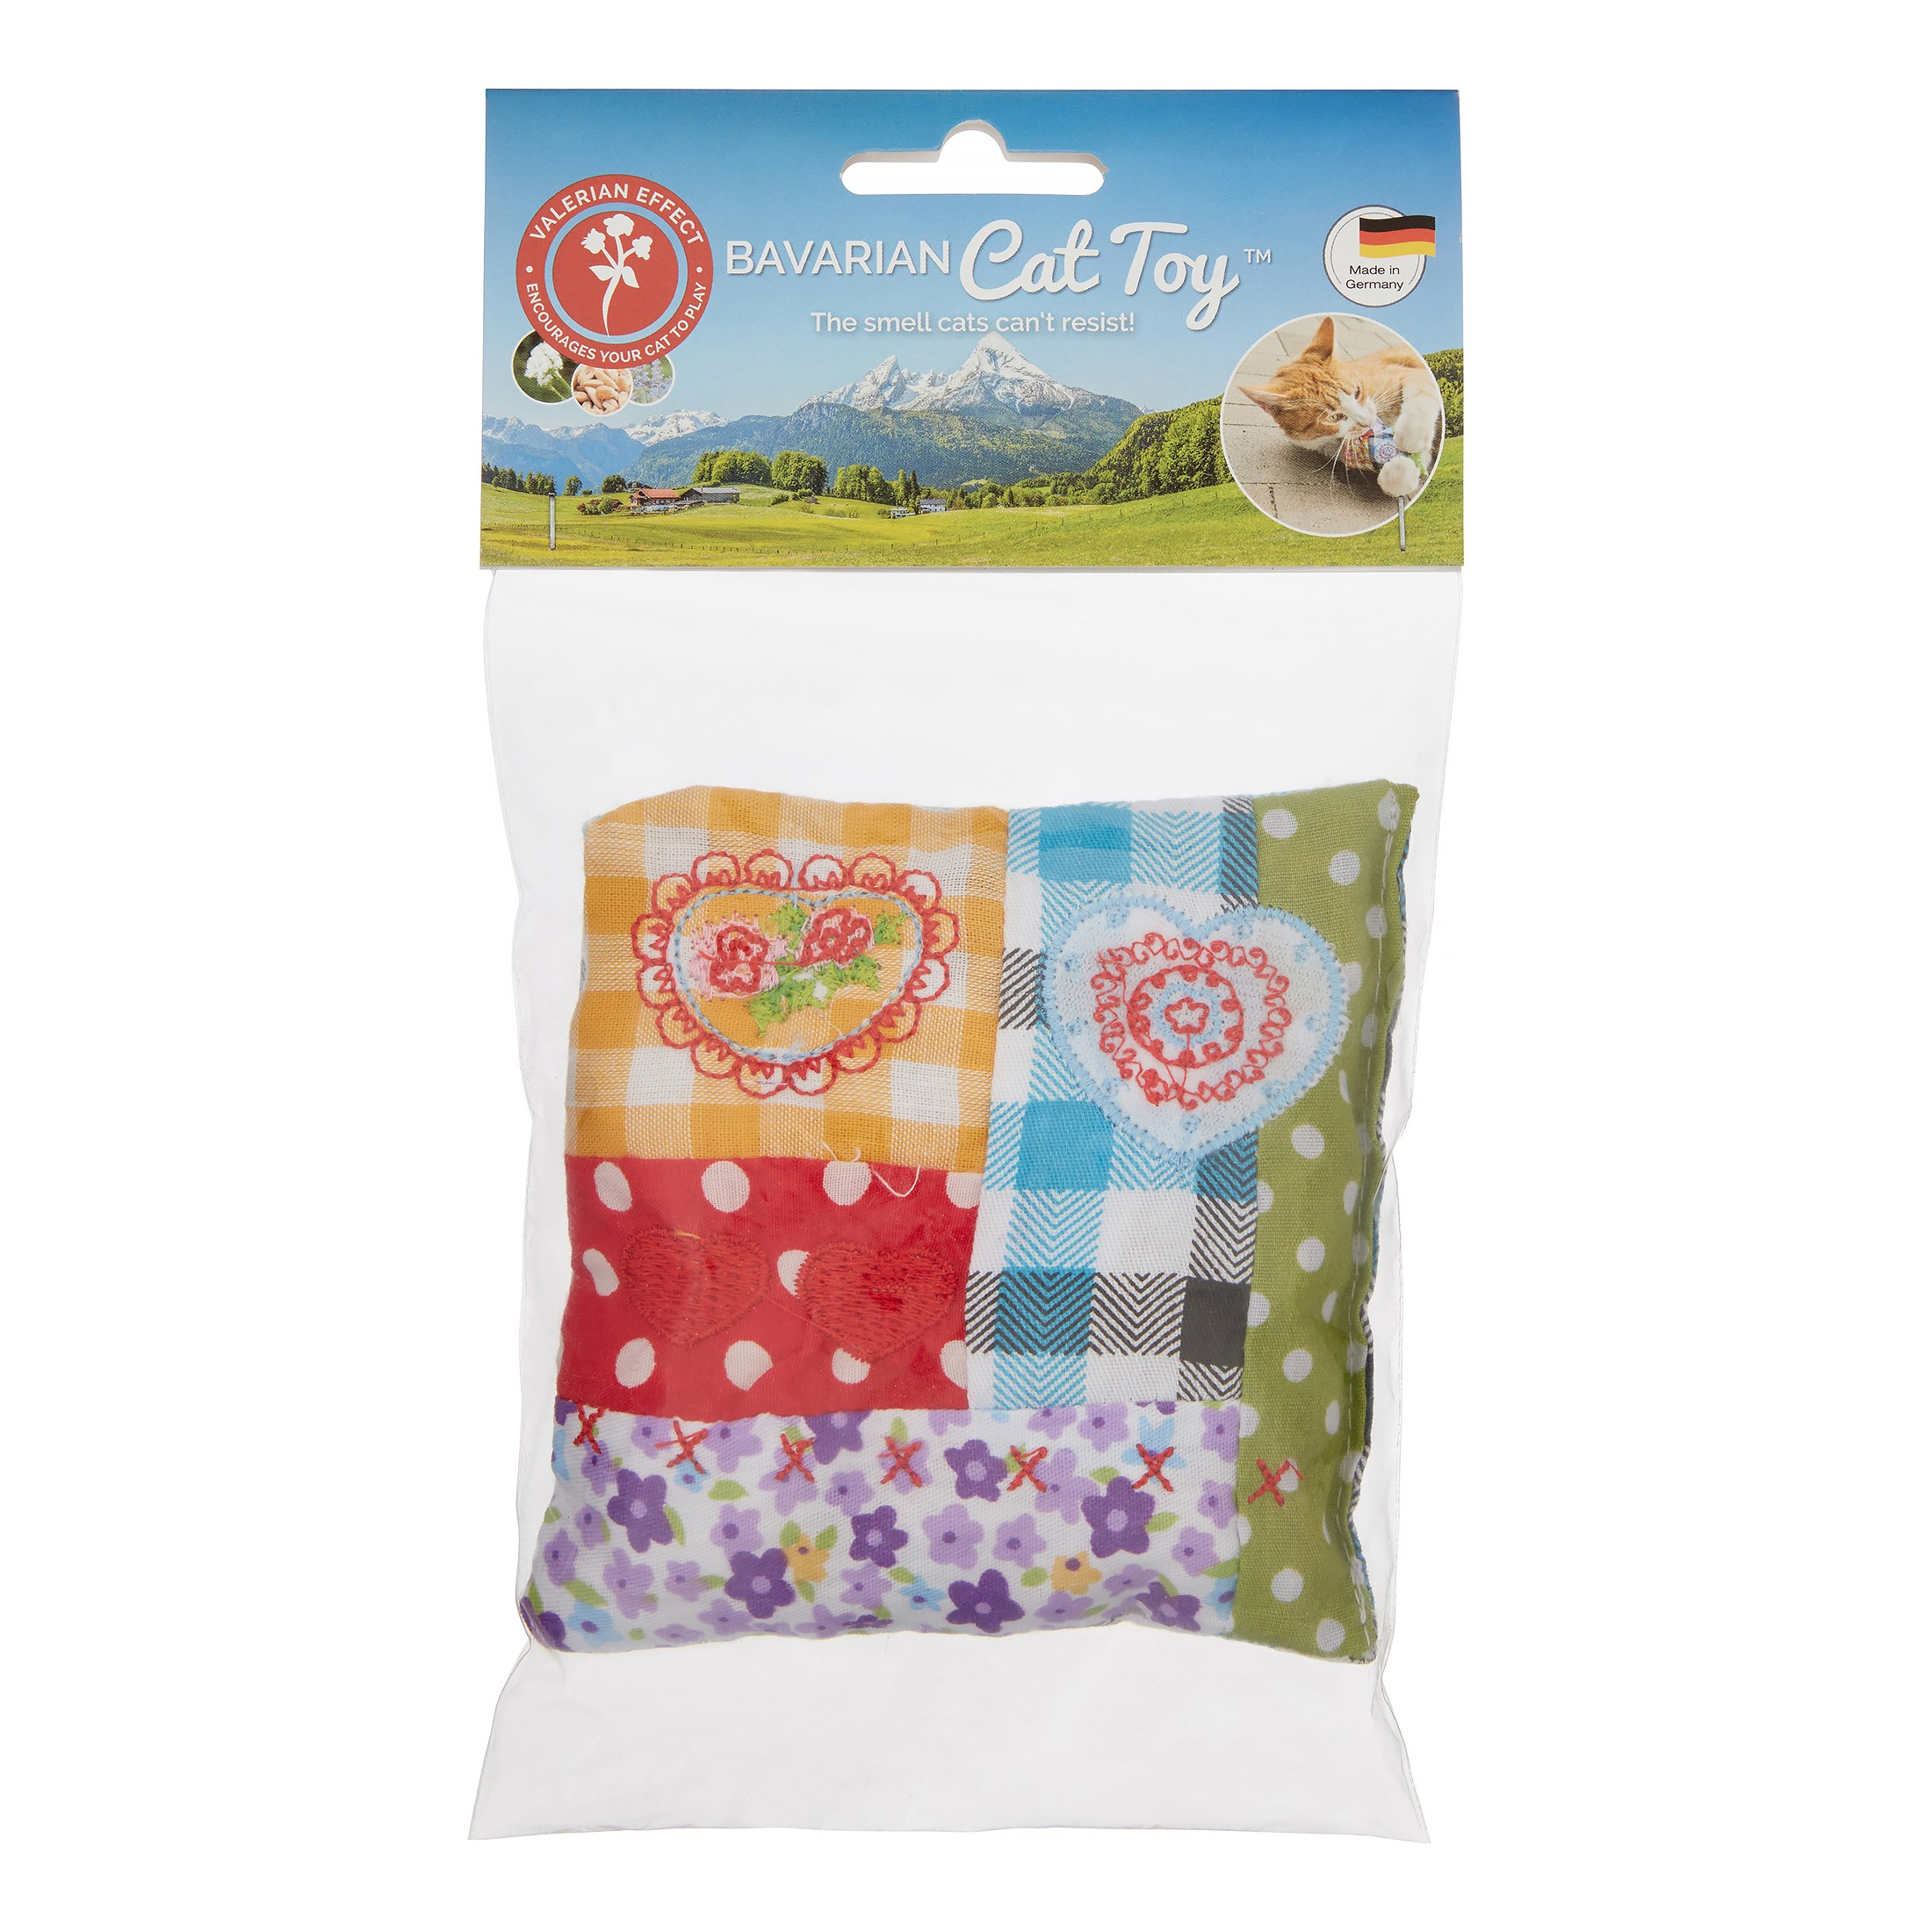 Bavarian Cat Toys Patchwork Pillow Catnip Cat Toy, Small by Bavarian Cat Toys